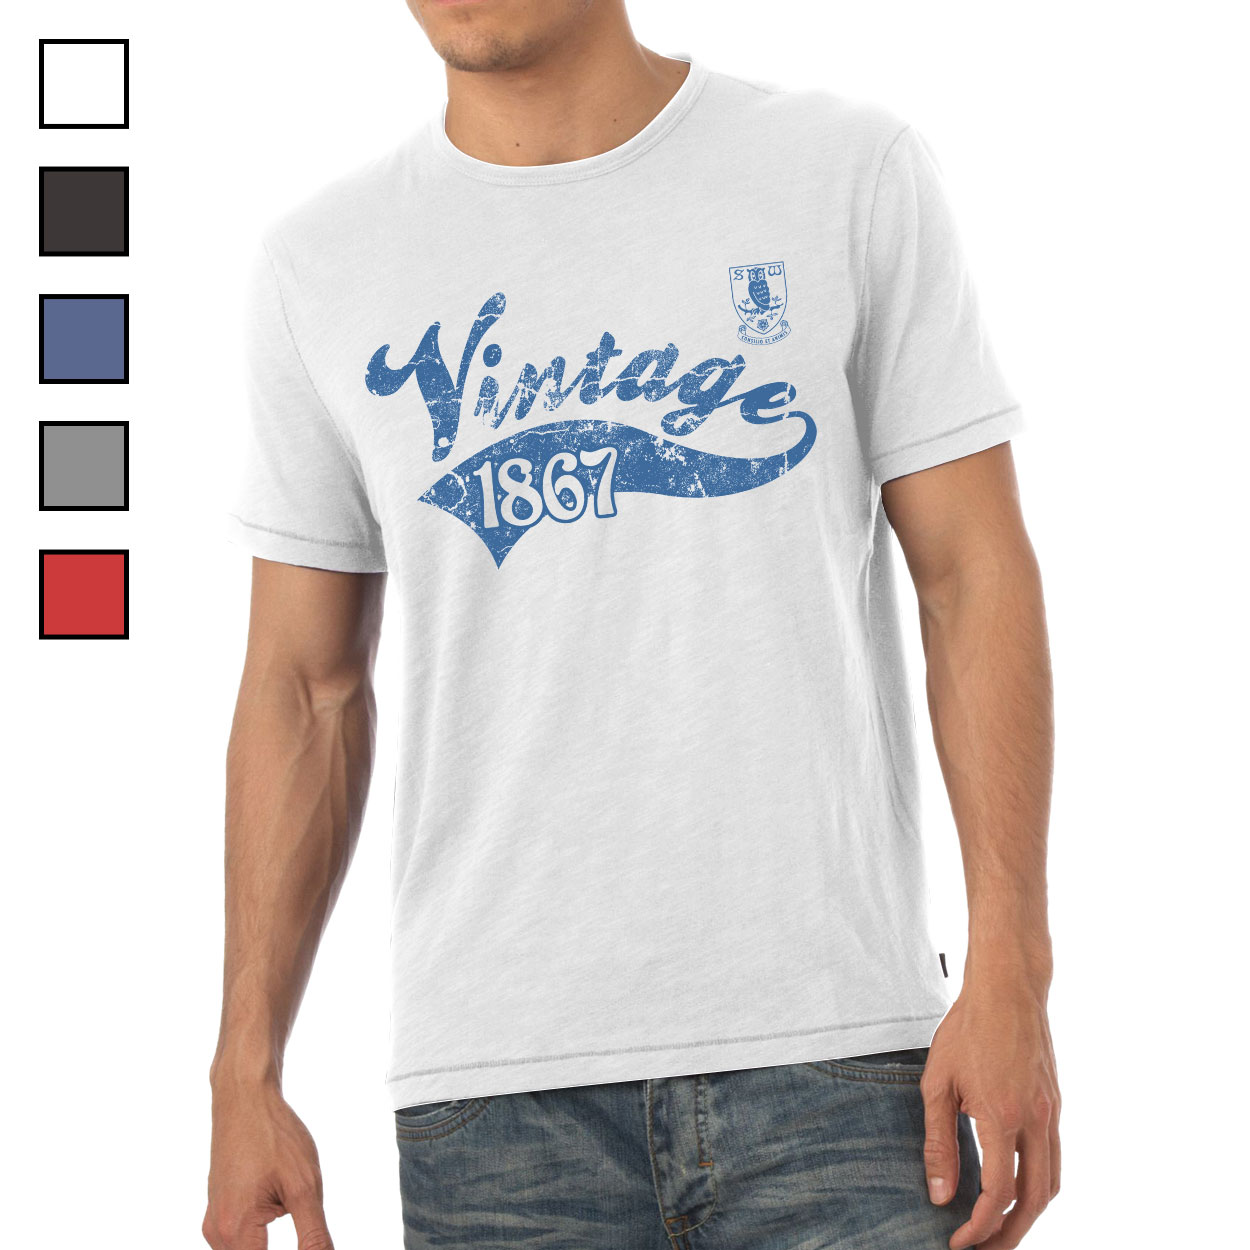 Sheffield Wednesday FC Mens Vintage T-Shirt